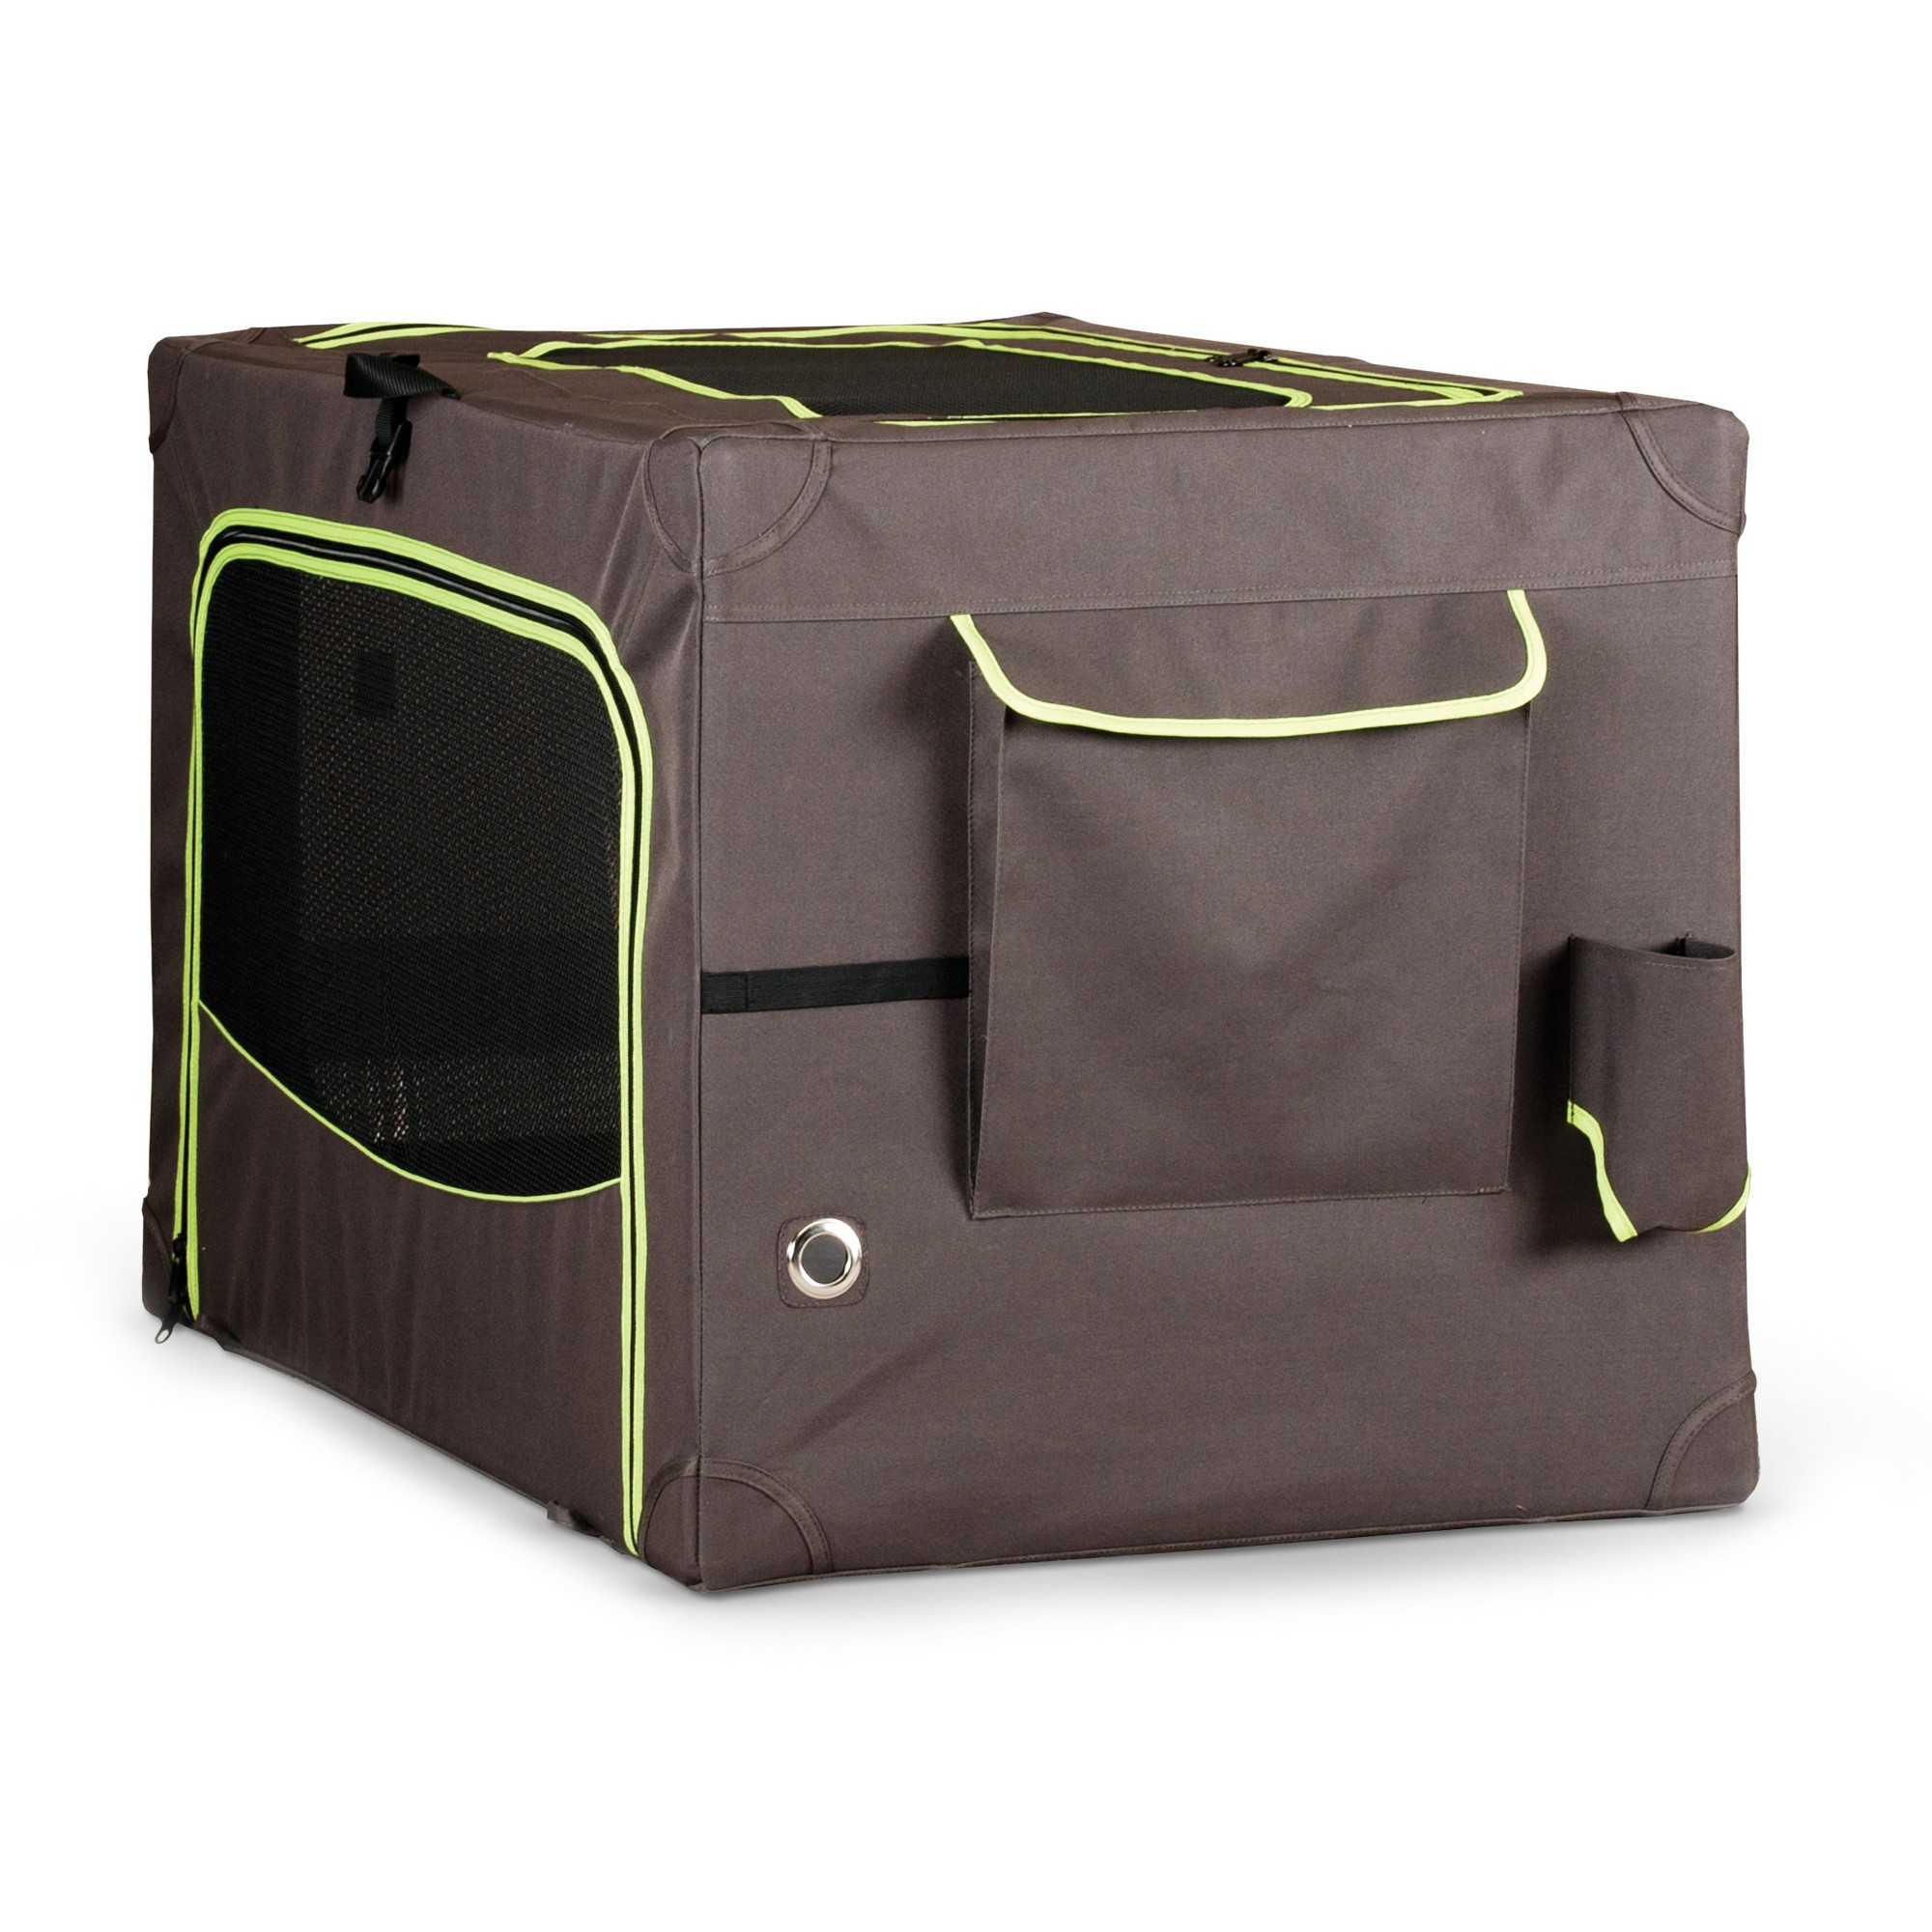 K&h Pet Products Classy Go Soft Crate Large Brown/Lime